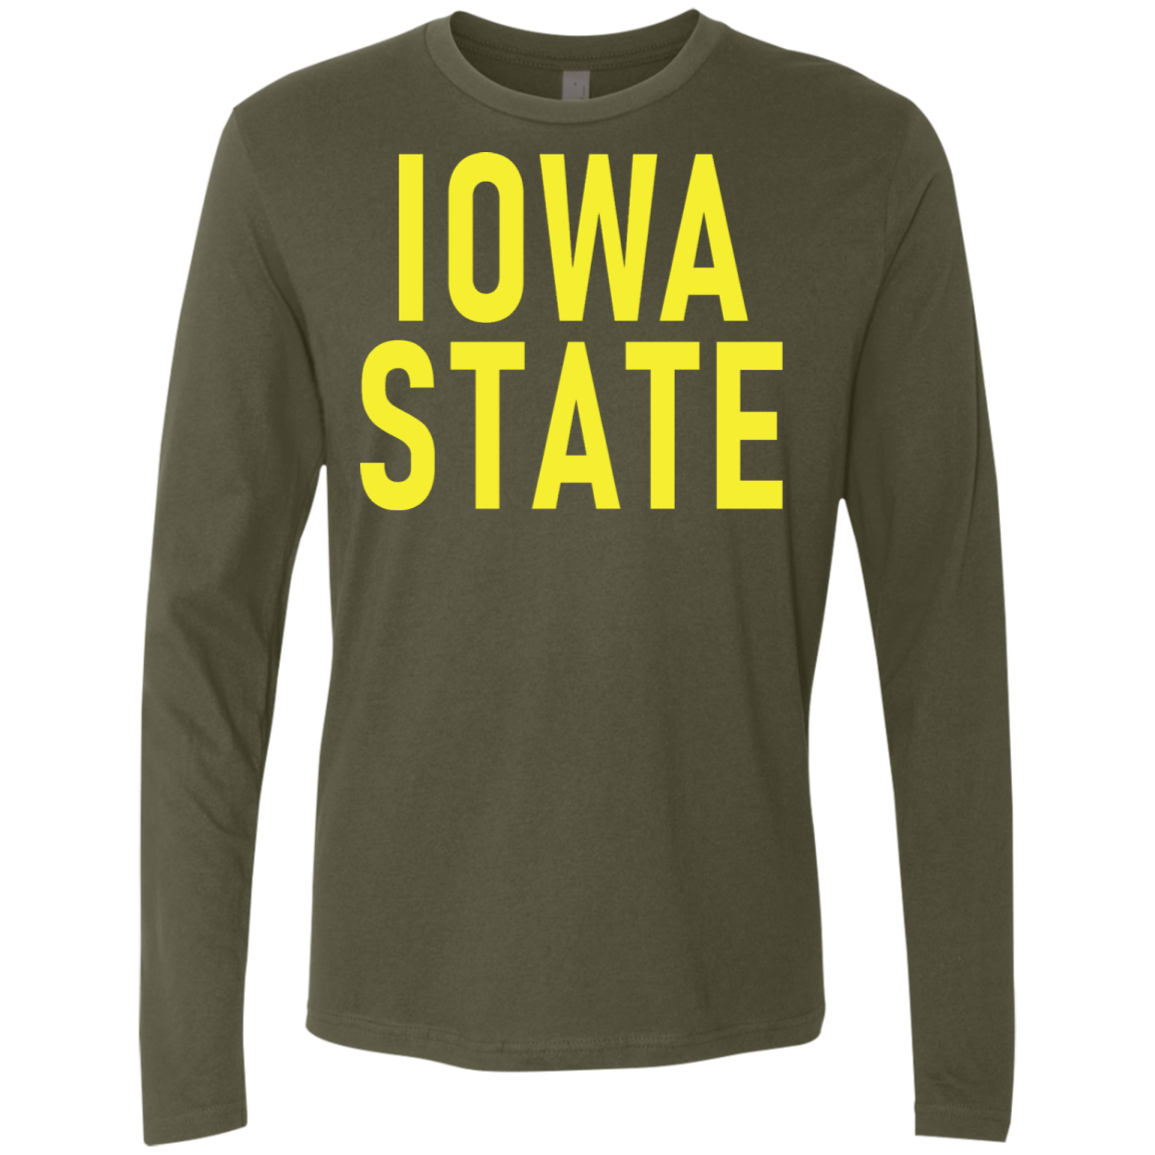 Iowa State Men's Long Sleeve Tee